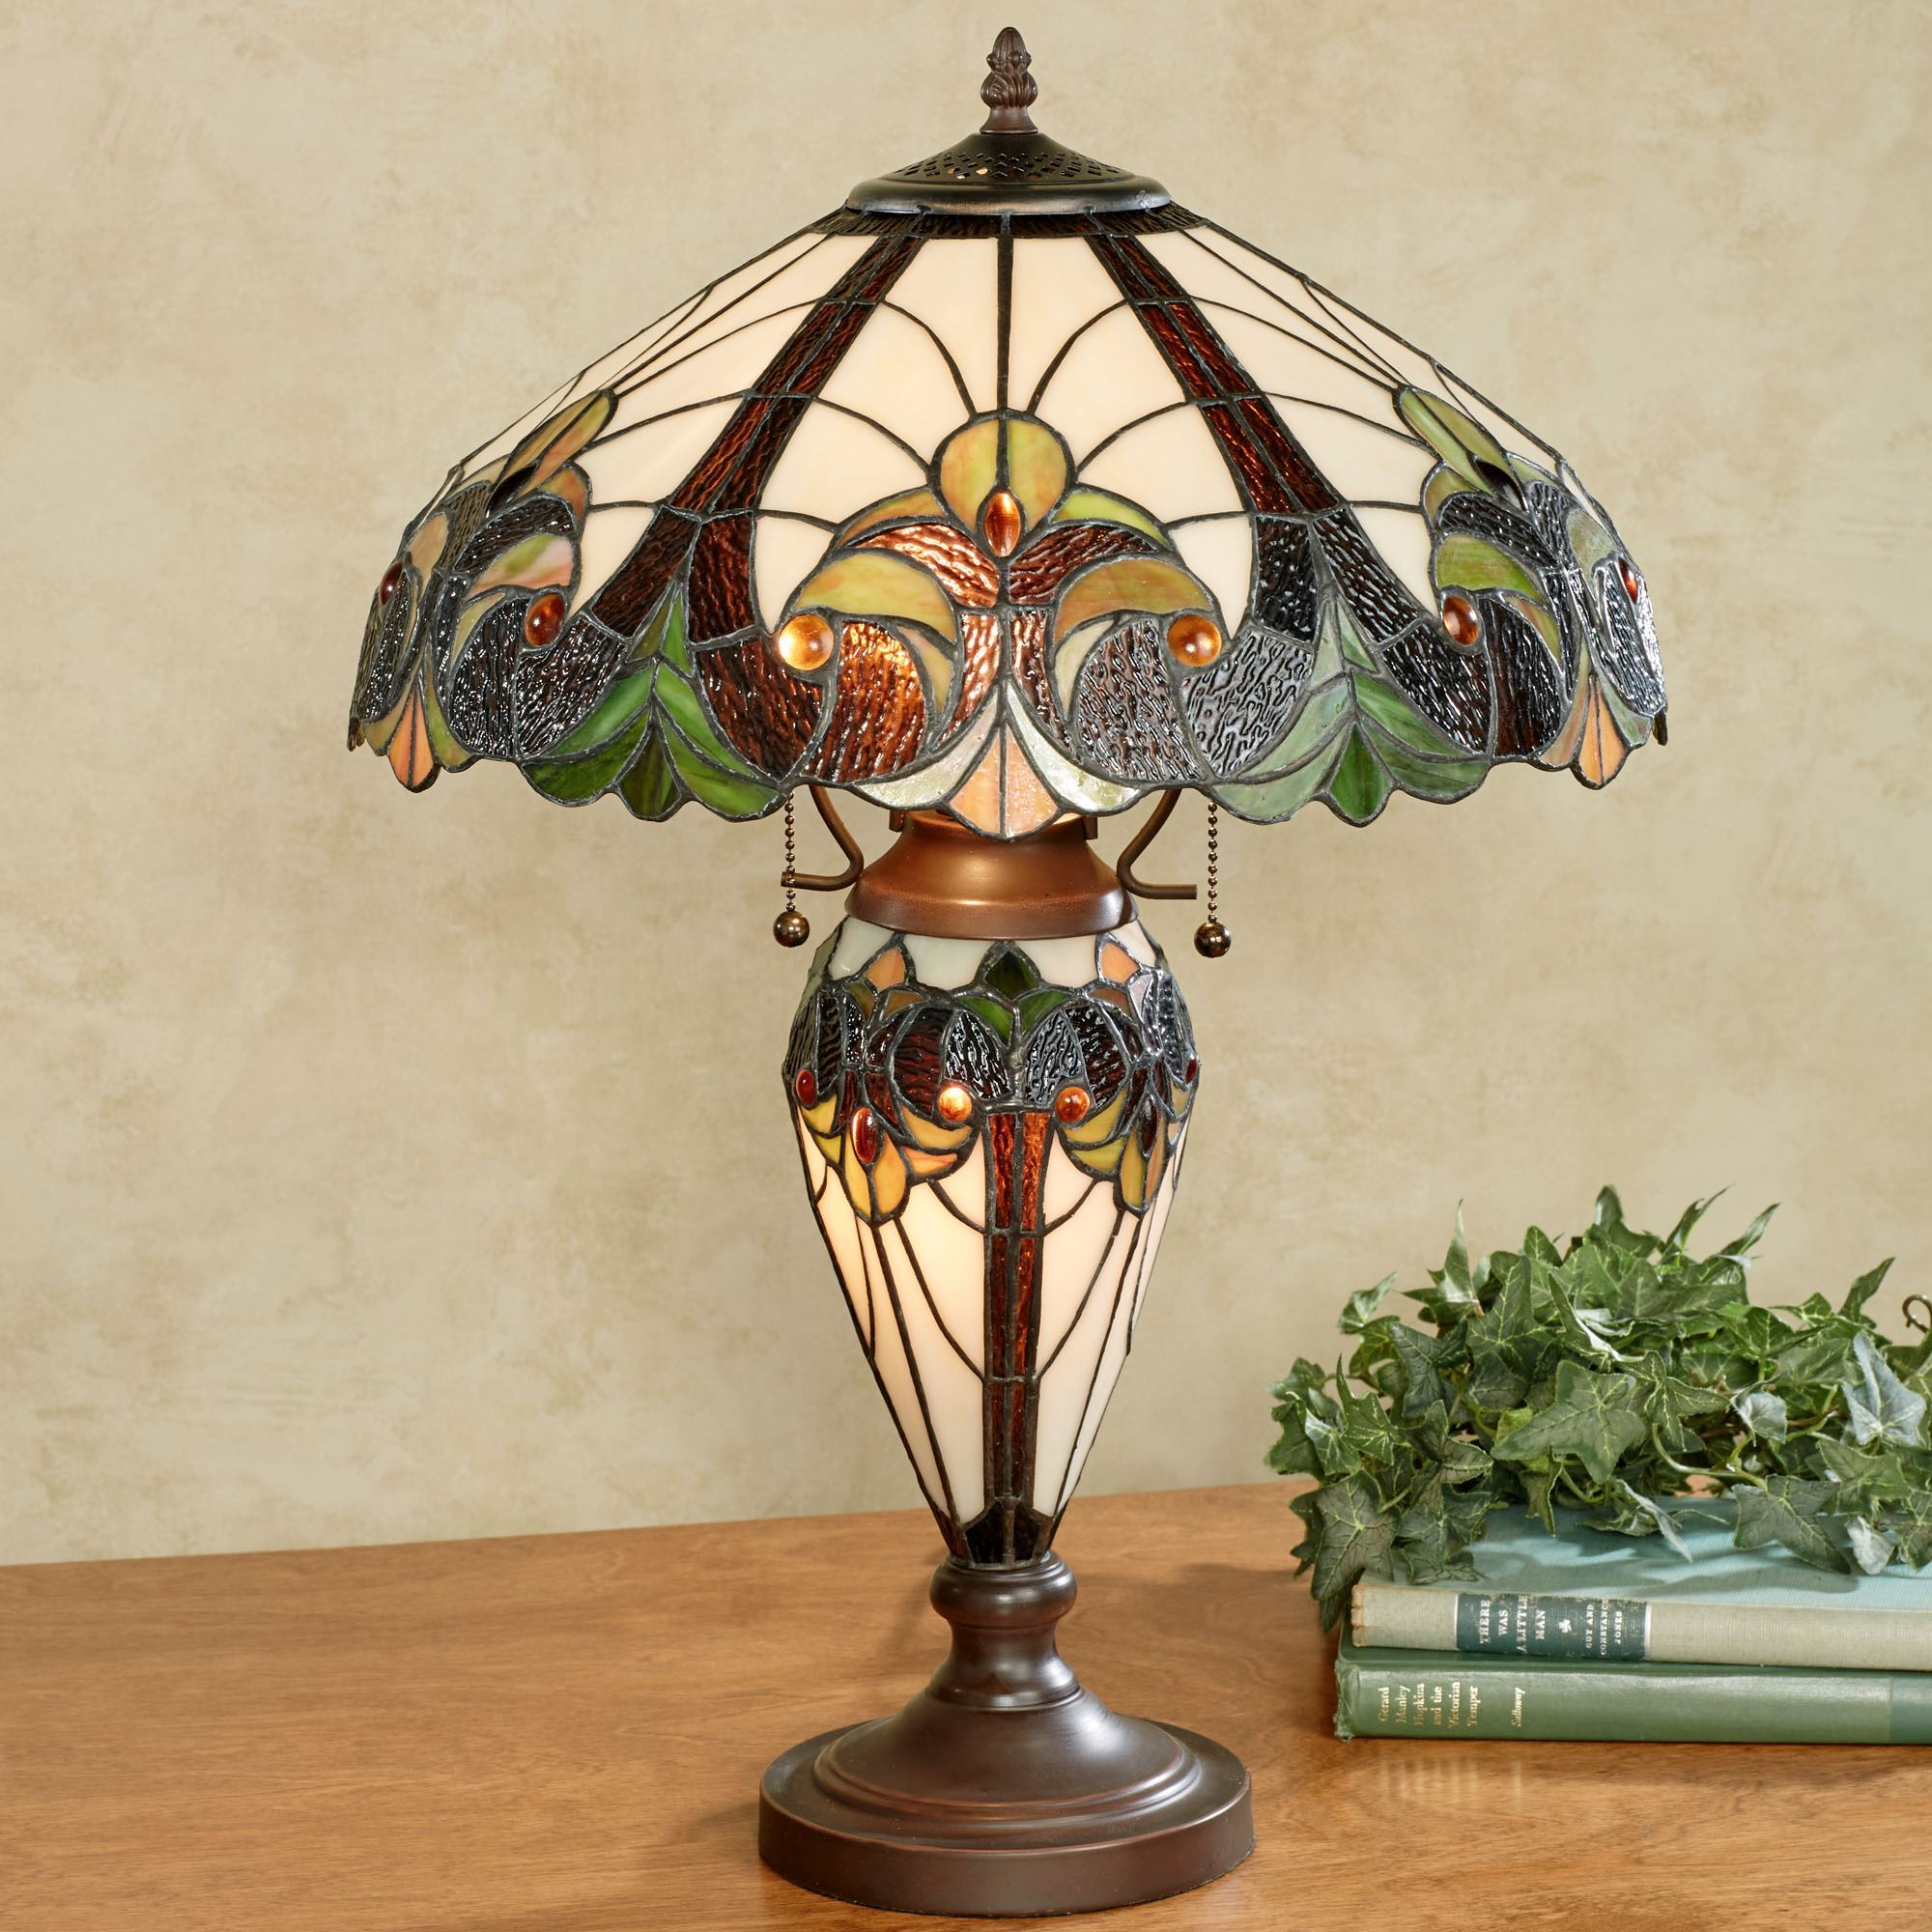 Clavillia Stained Glass Table Lamp With Led Bulbs